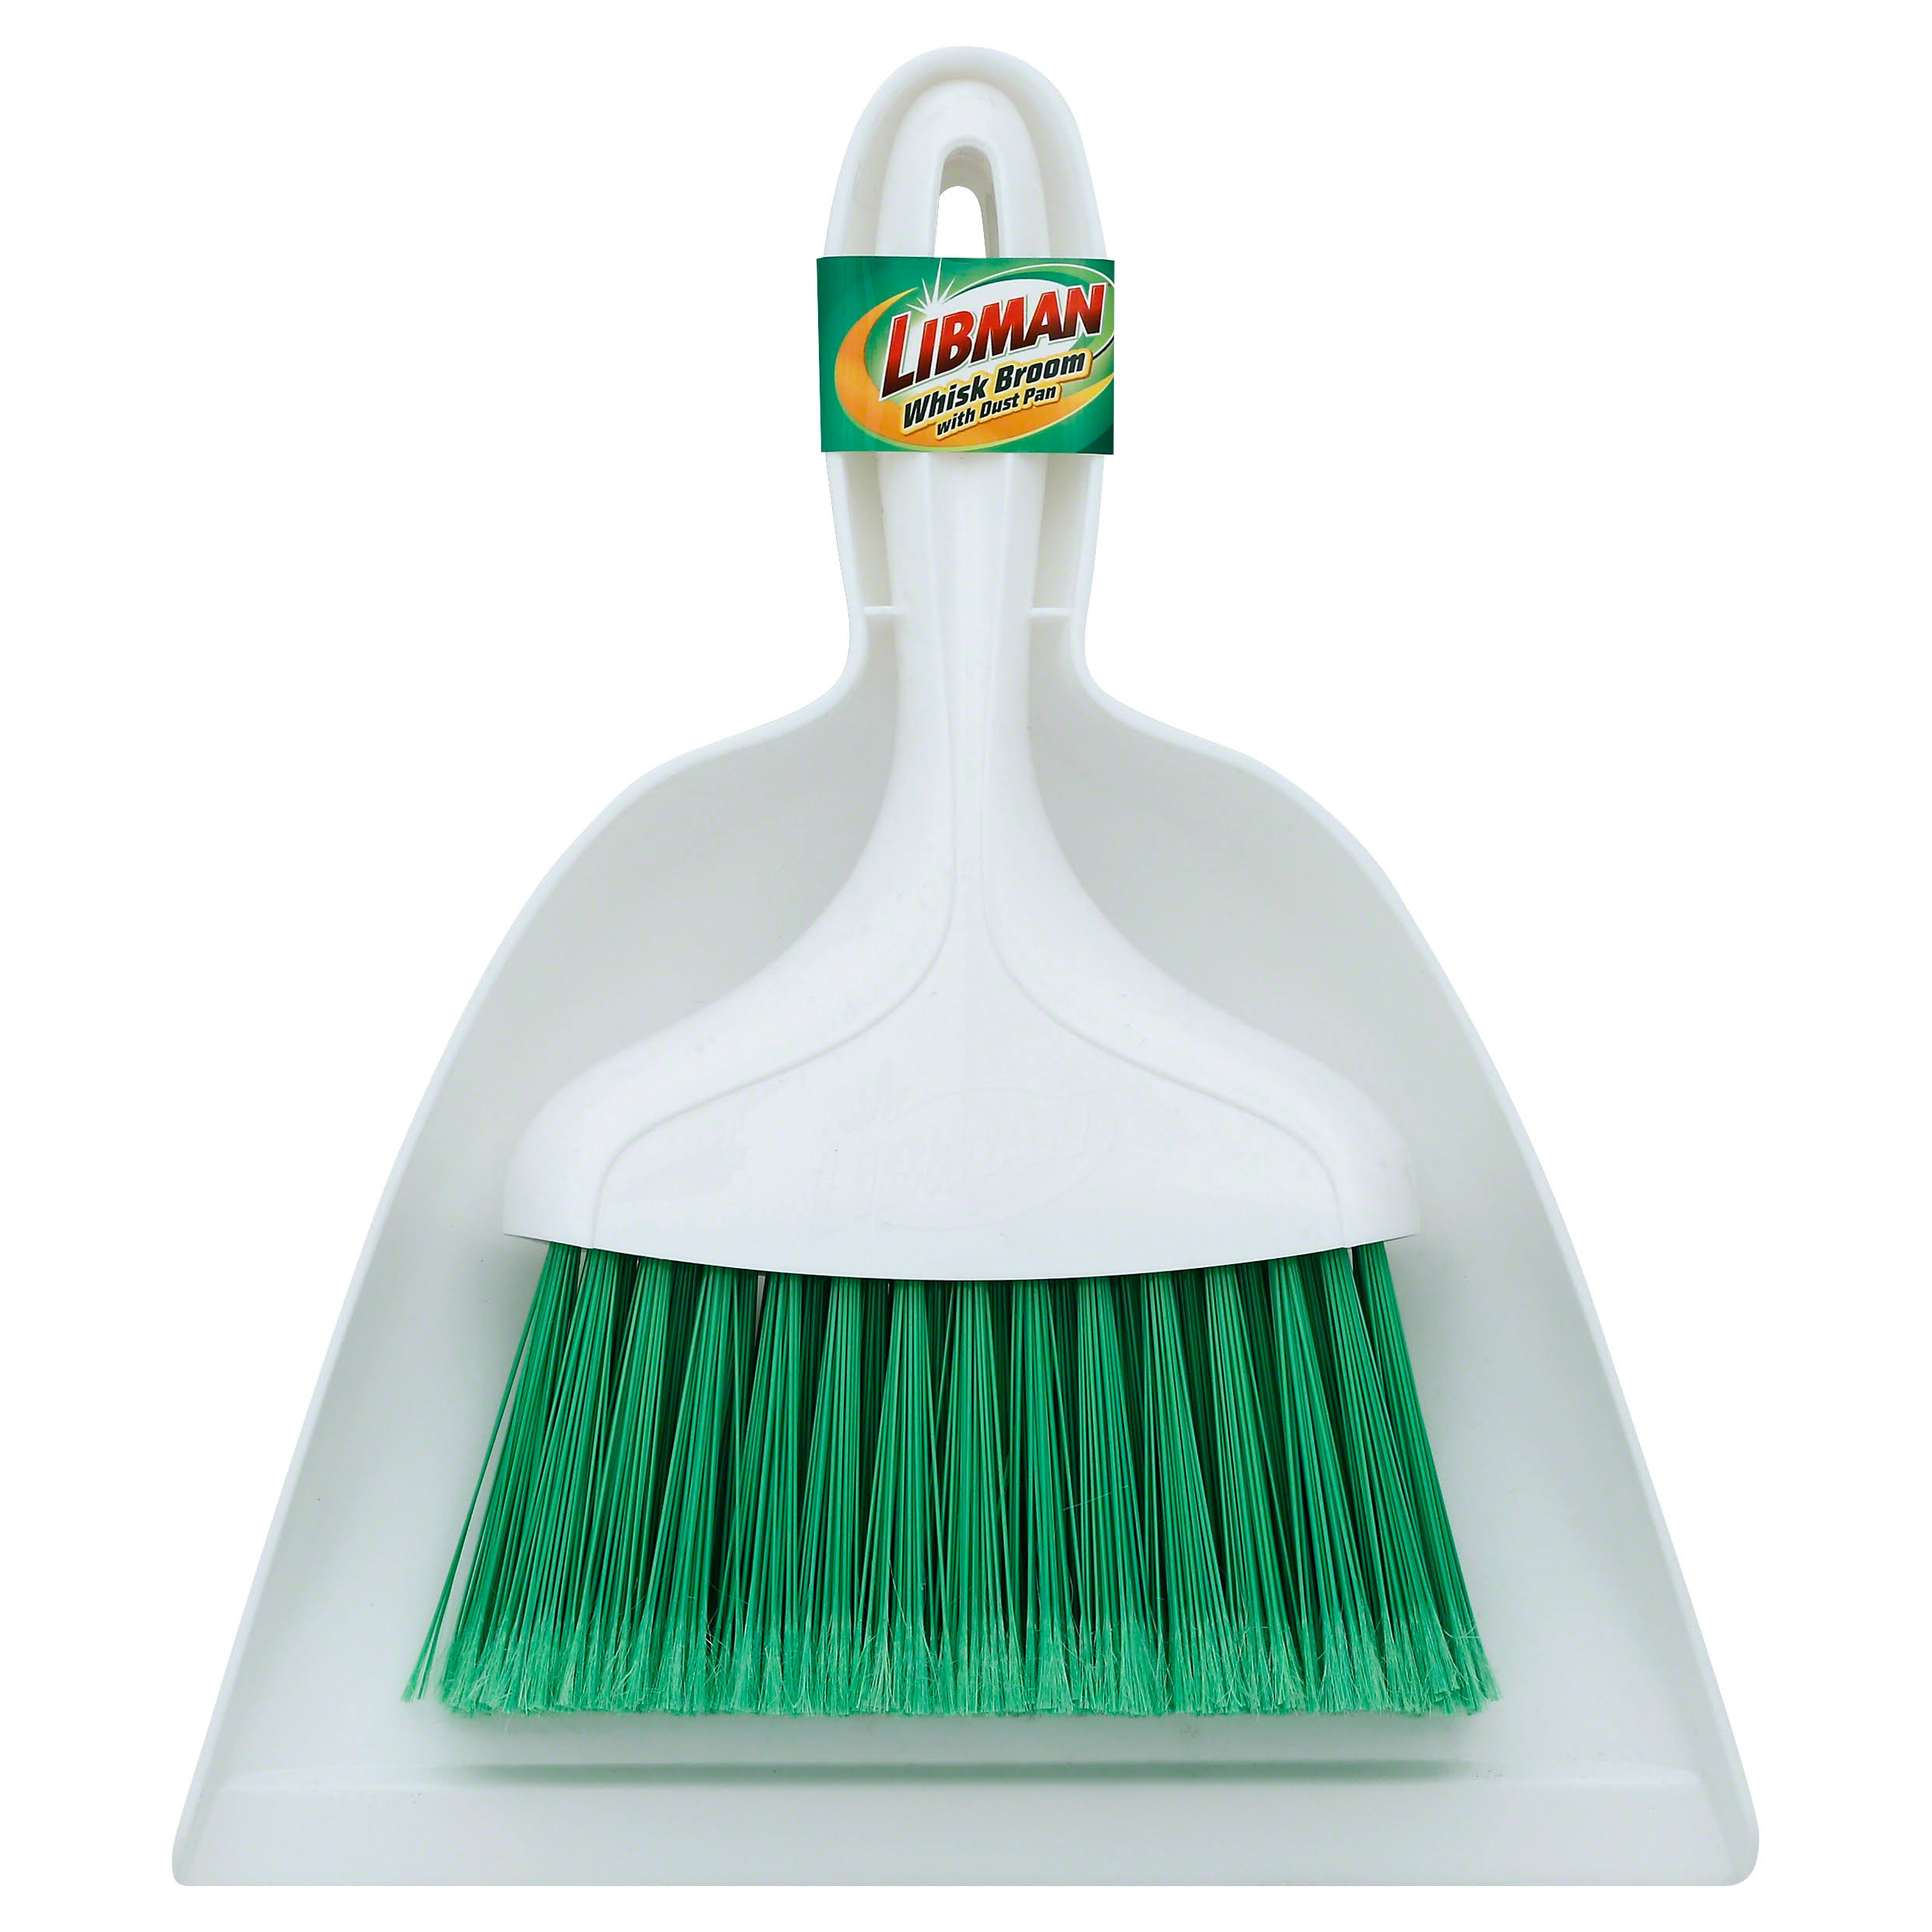 Libman Whisk Broom and Dust Pan